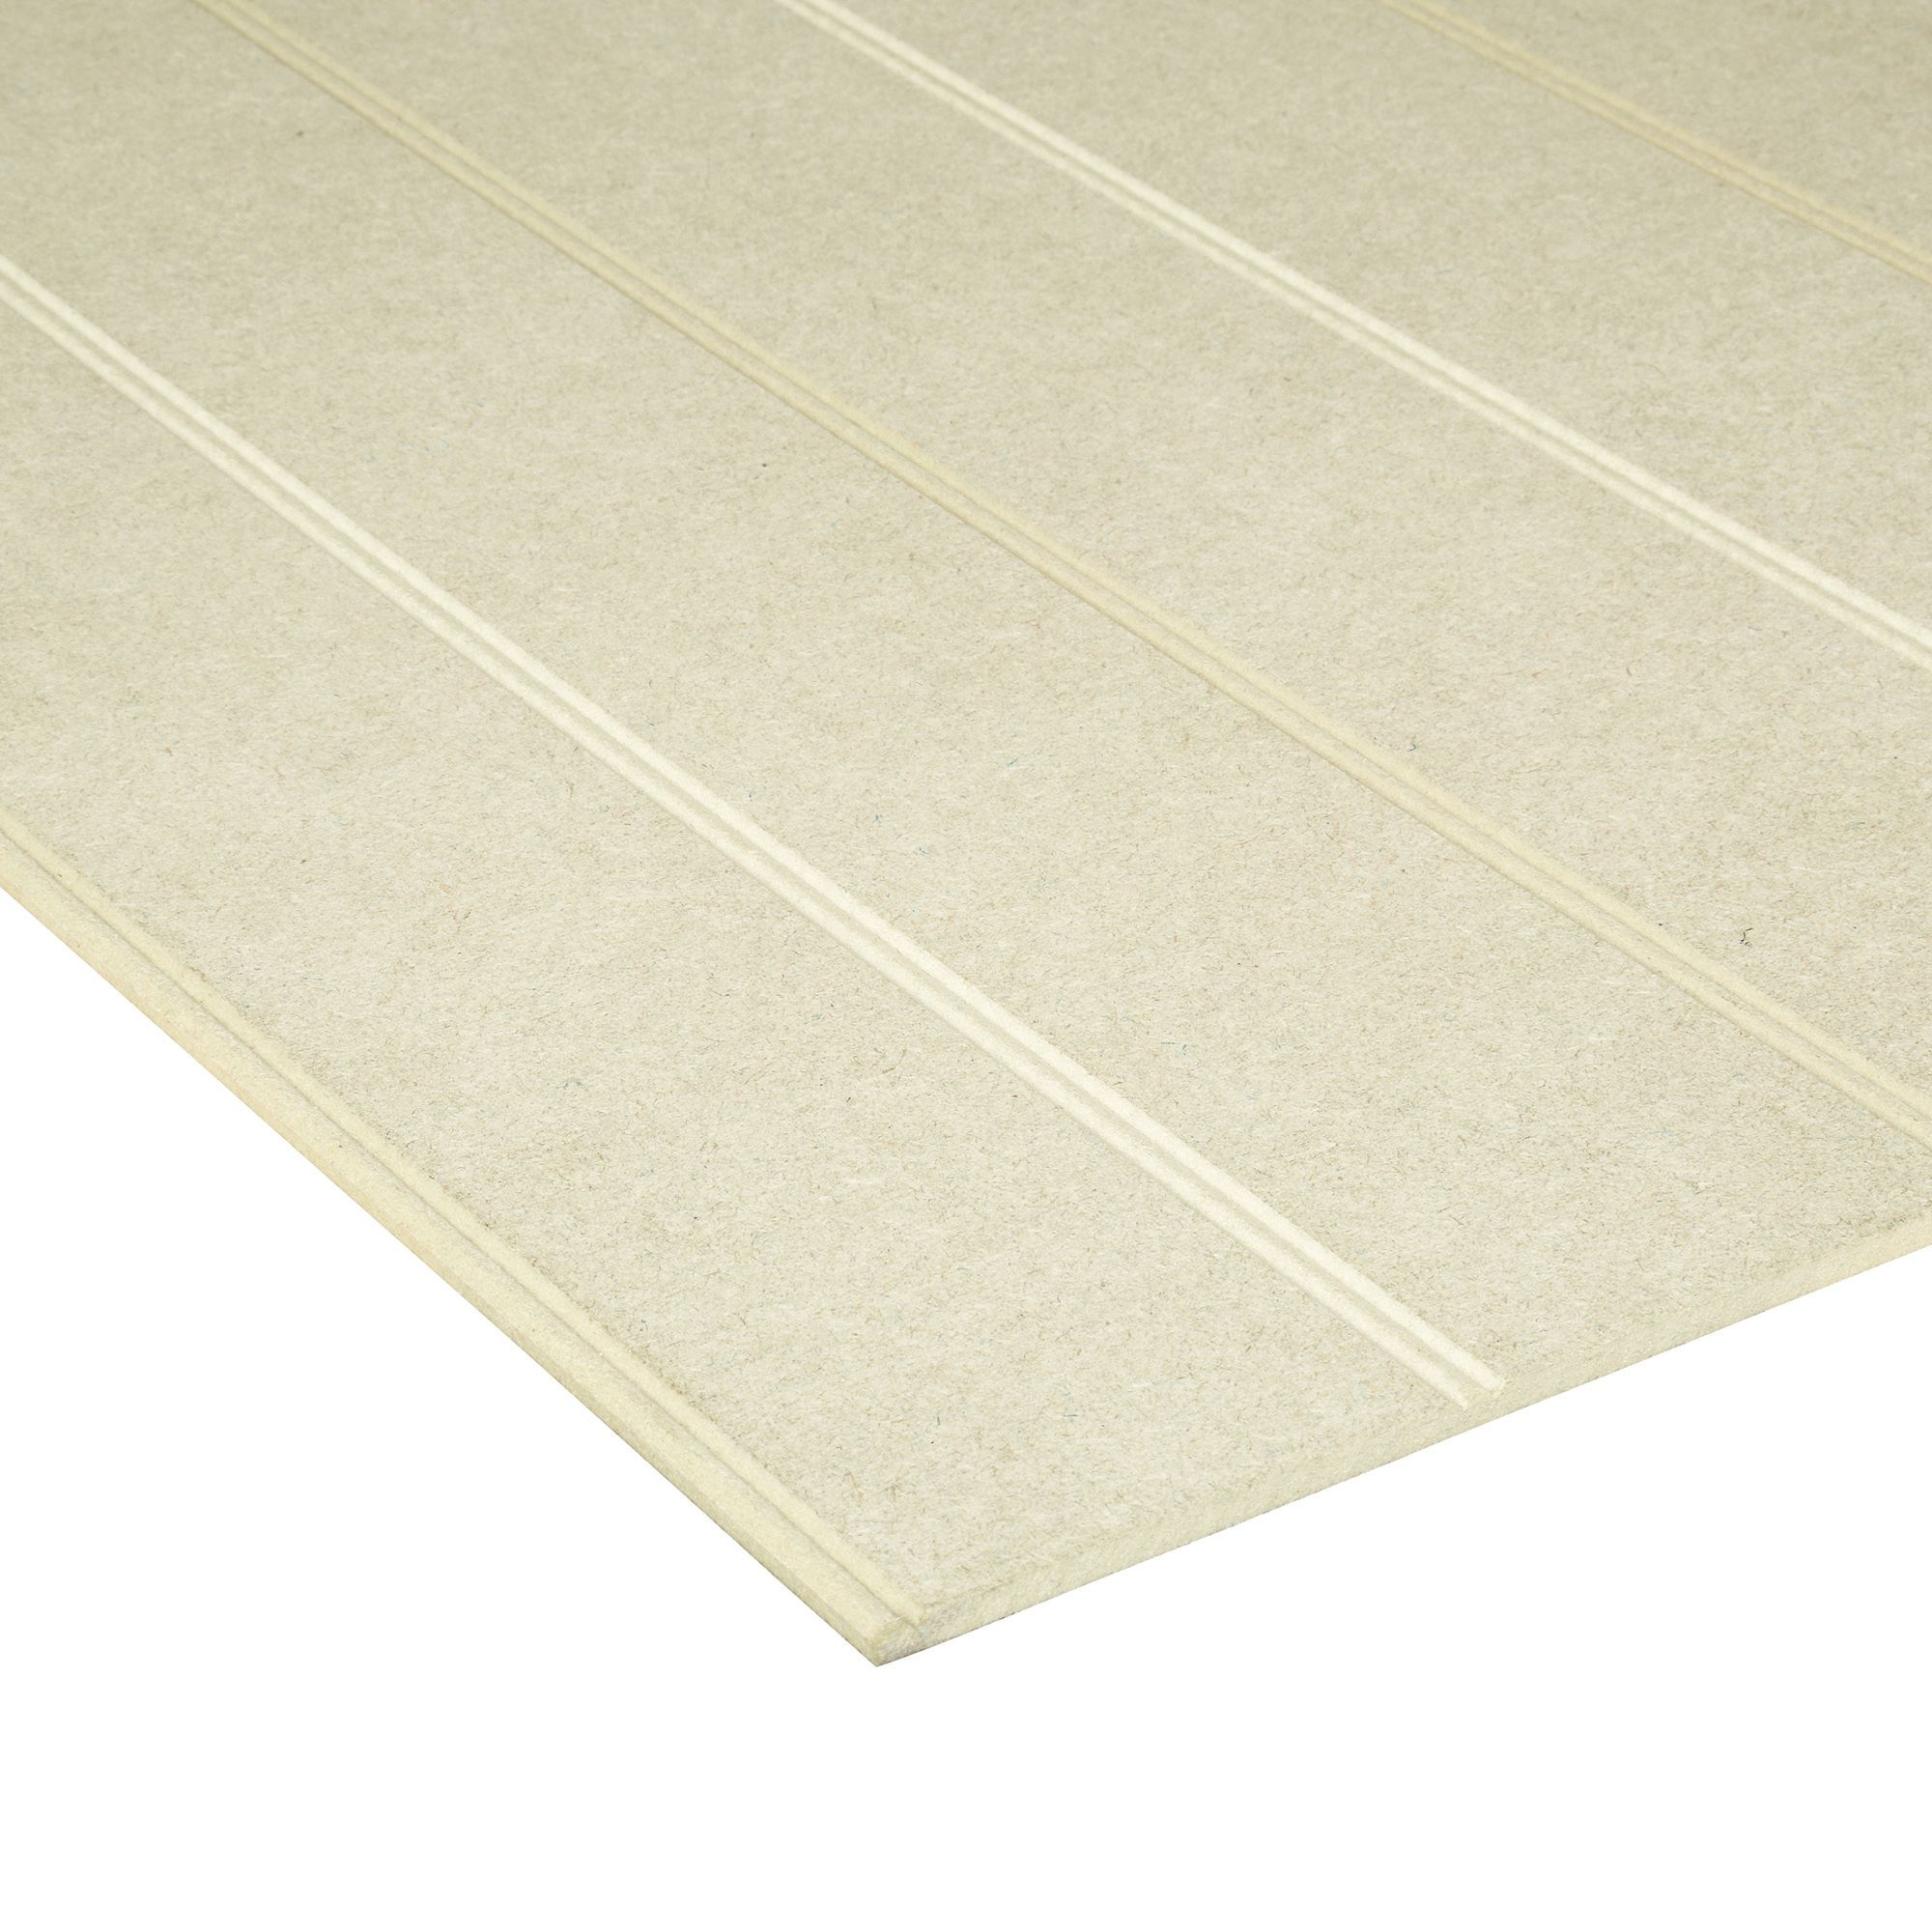 Compare cheap offers & prices of Wickes Beaded MDF Panel 6 x 607 x 1220mm manufactured by Wickes